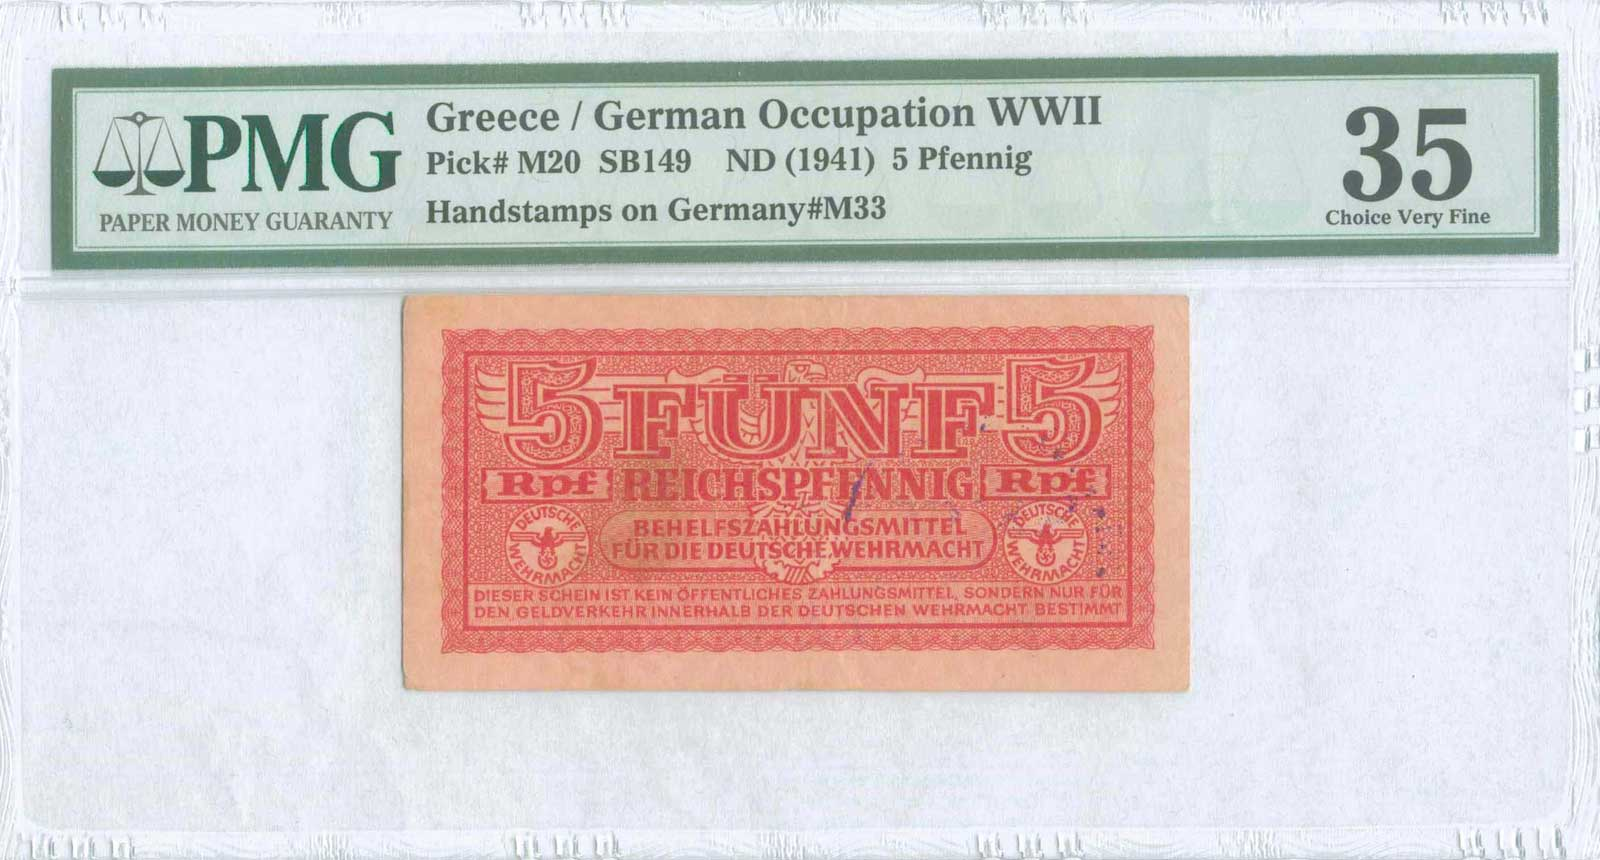 Lot 9401 - GREECE-  PAPER MONEY - BANKNOTES german occupation wwii -  A. Karamitsos Public & LIVE Bid Auction 610 Coins, Medals & Banknotes